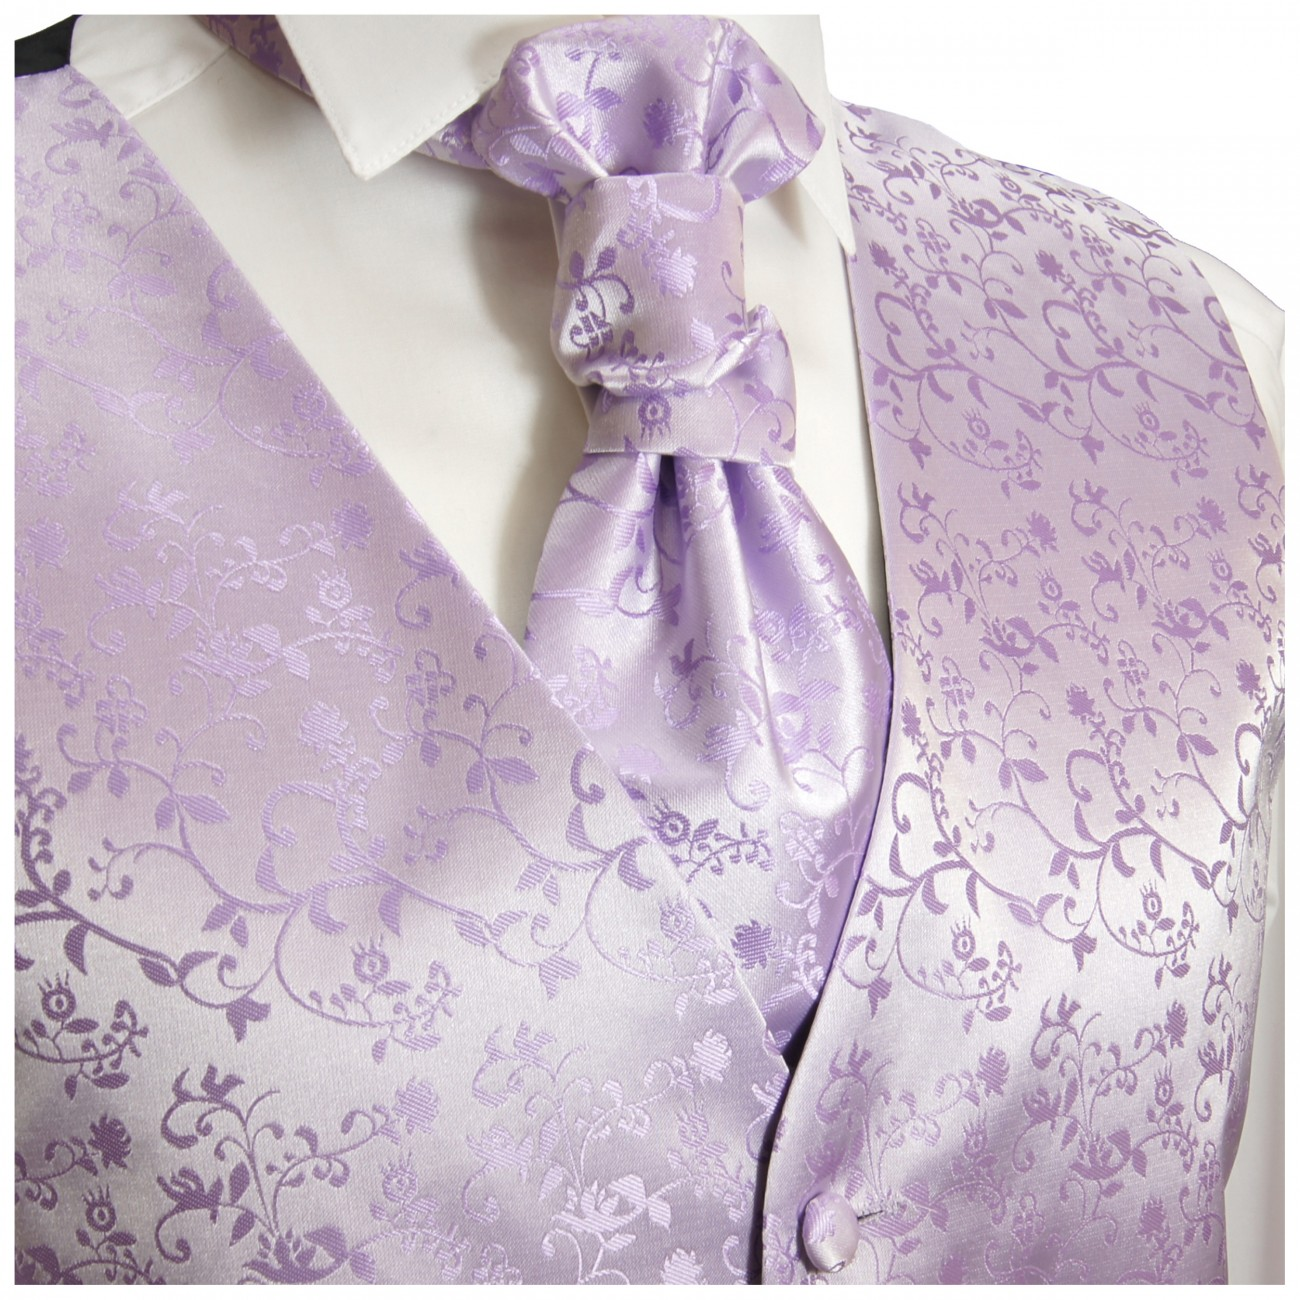 WEDDING VEST SET purple + Smoking Shirt champagner V93HL32